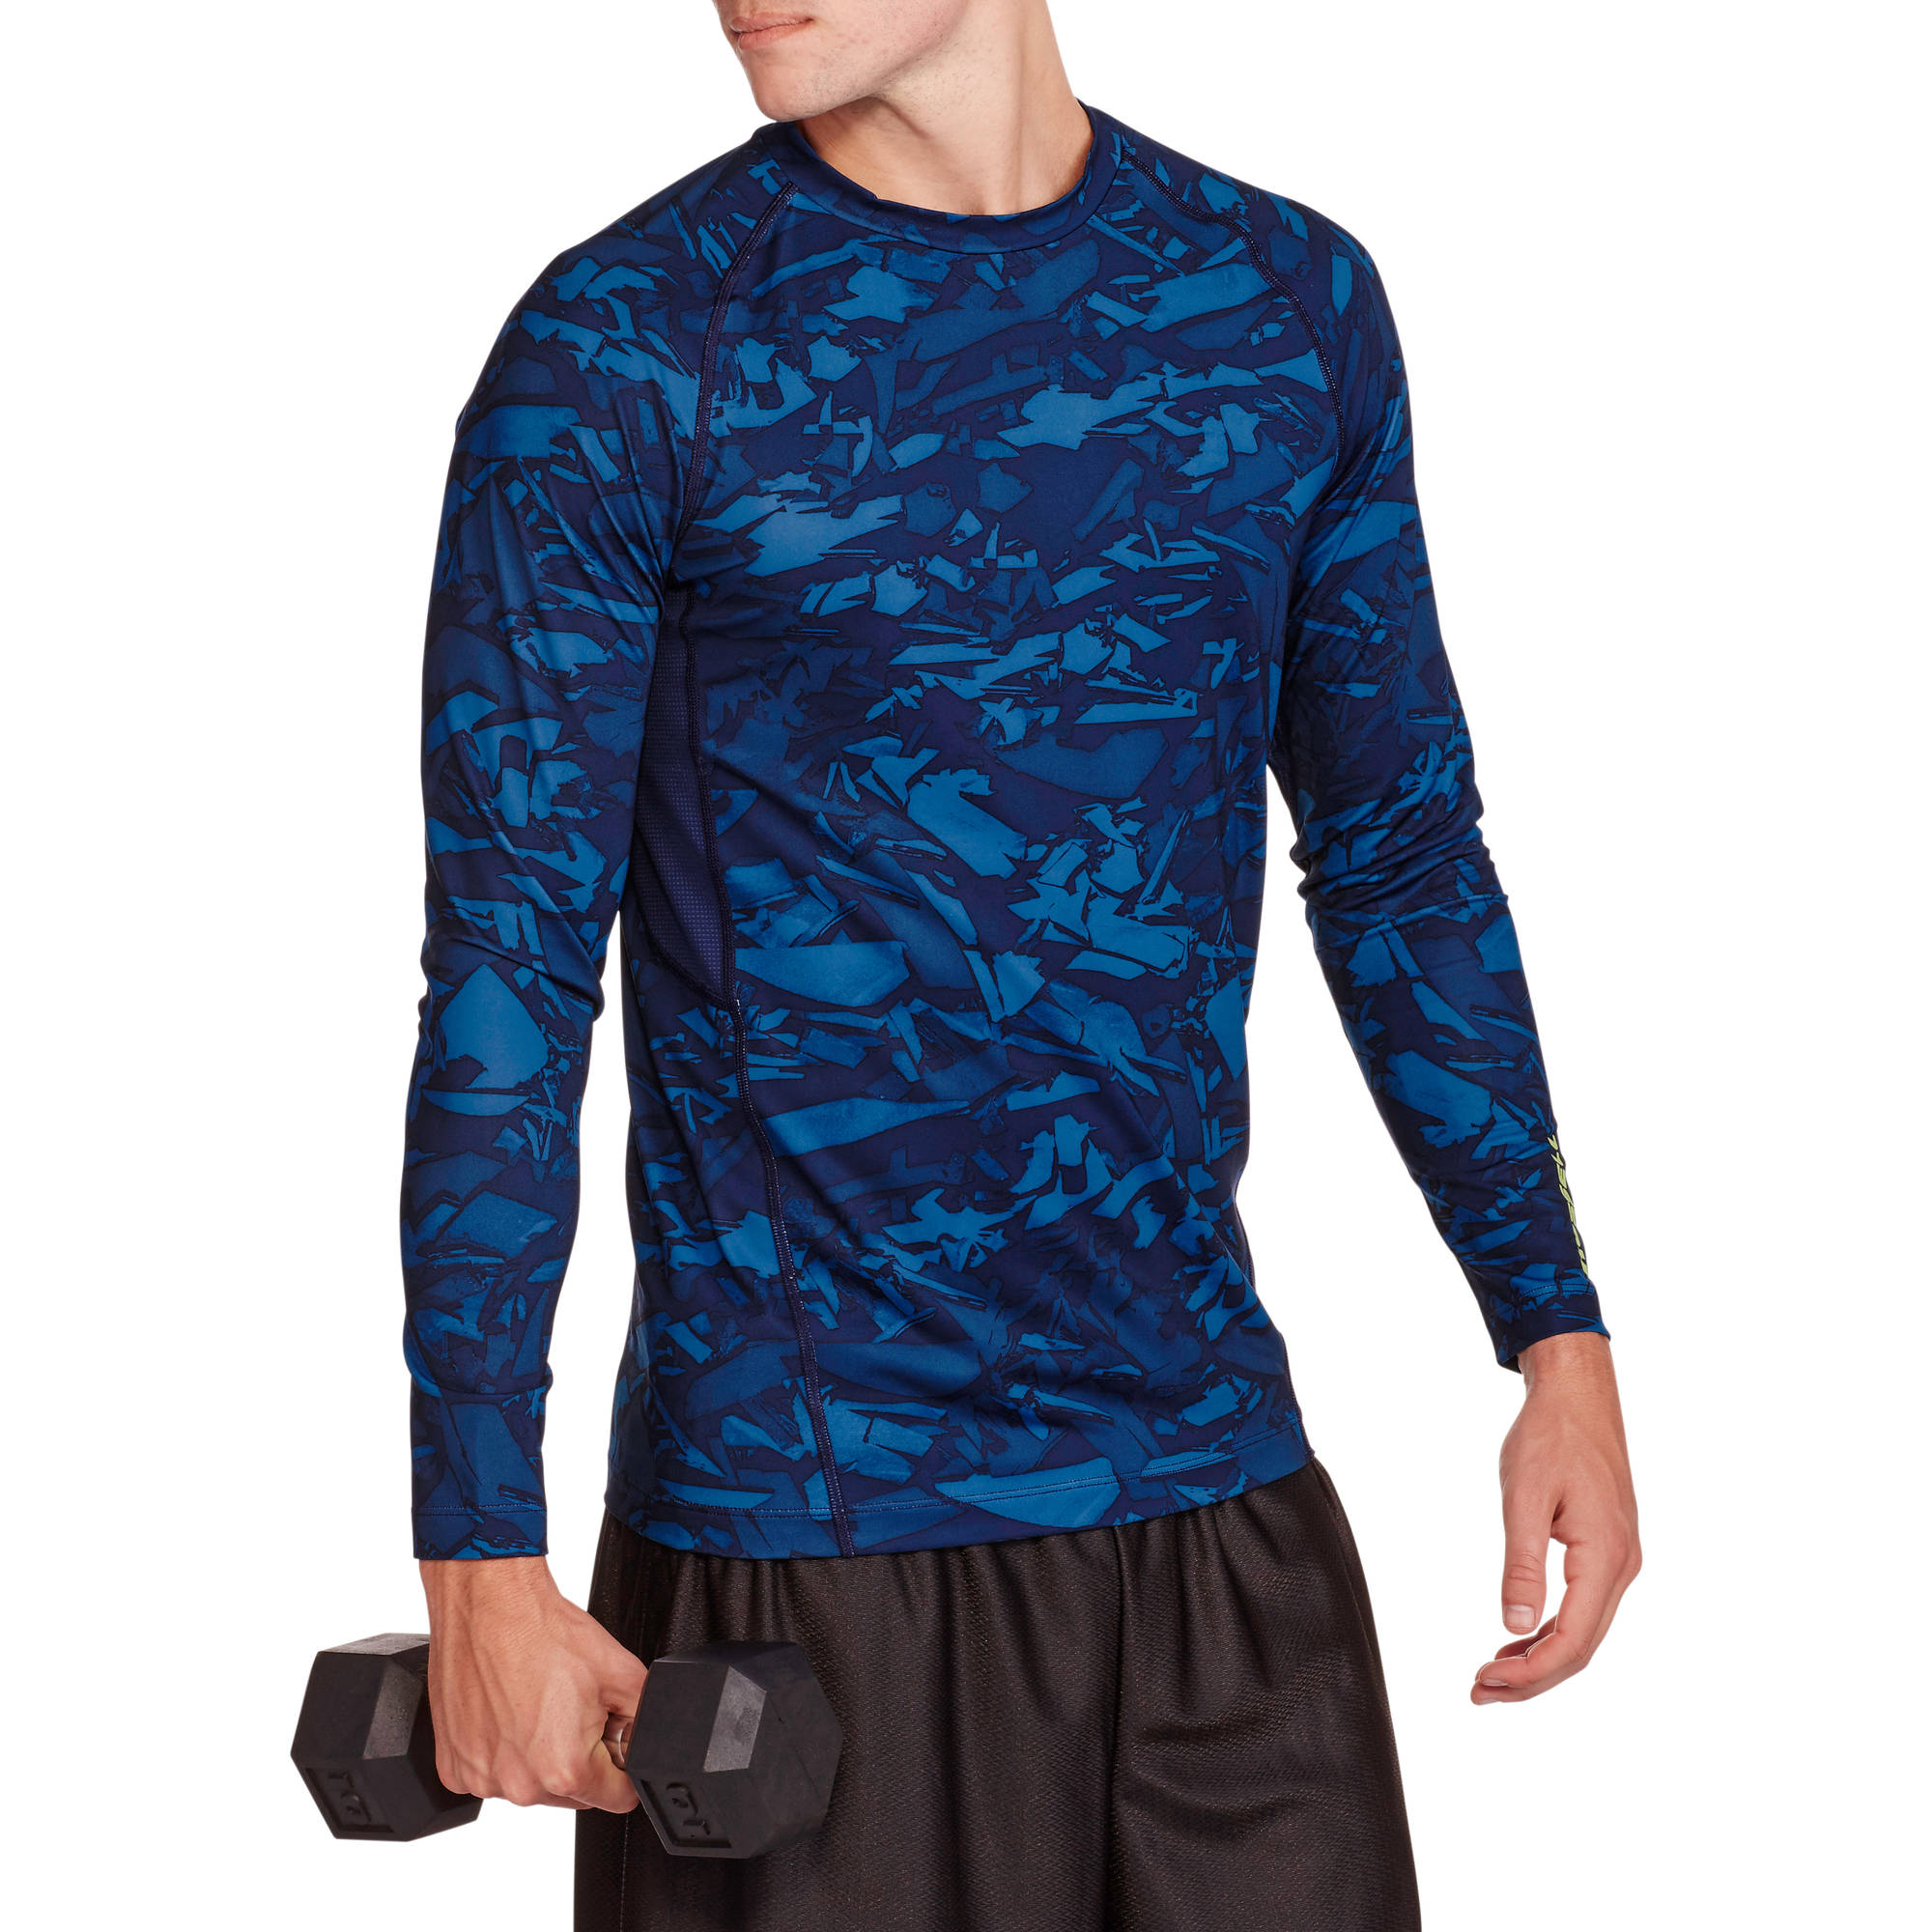 Russell Men's Printed Fitted Base Layer Tee